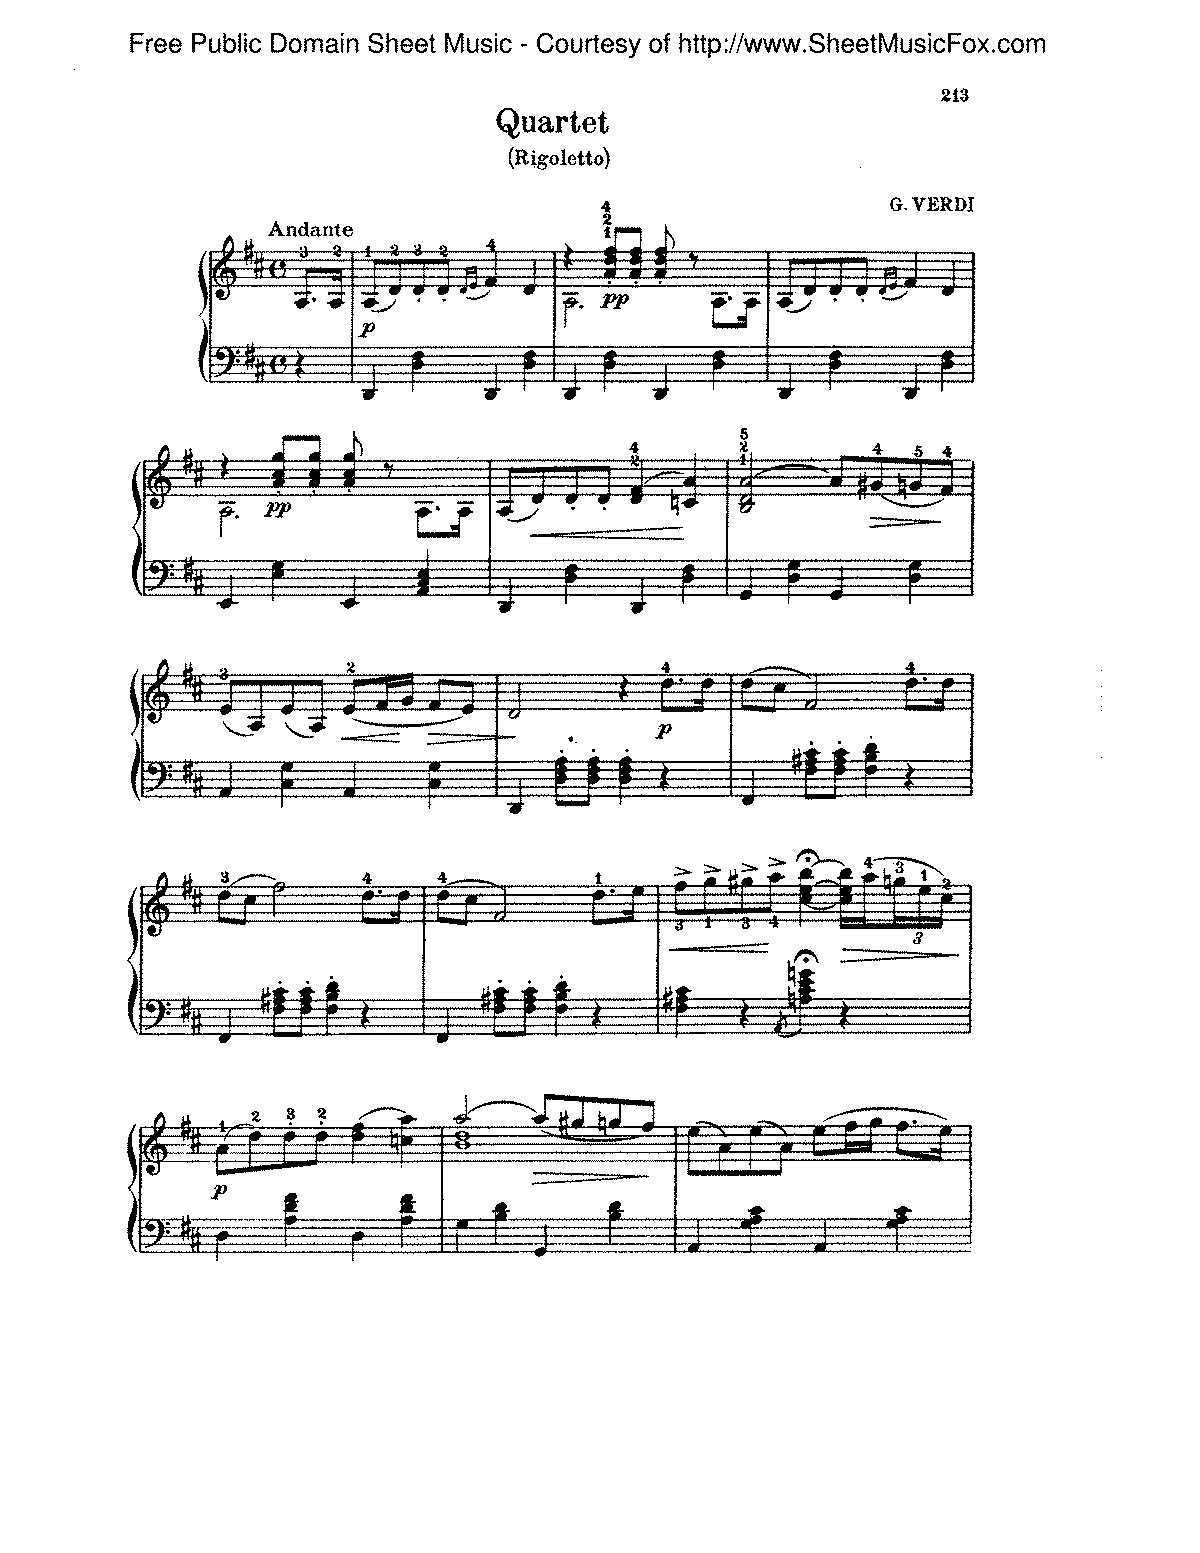 Verdi - Quartet from Rigoletto.pdf